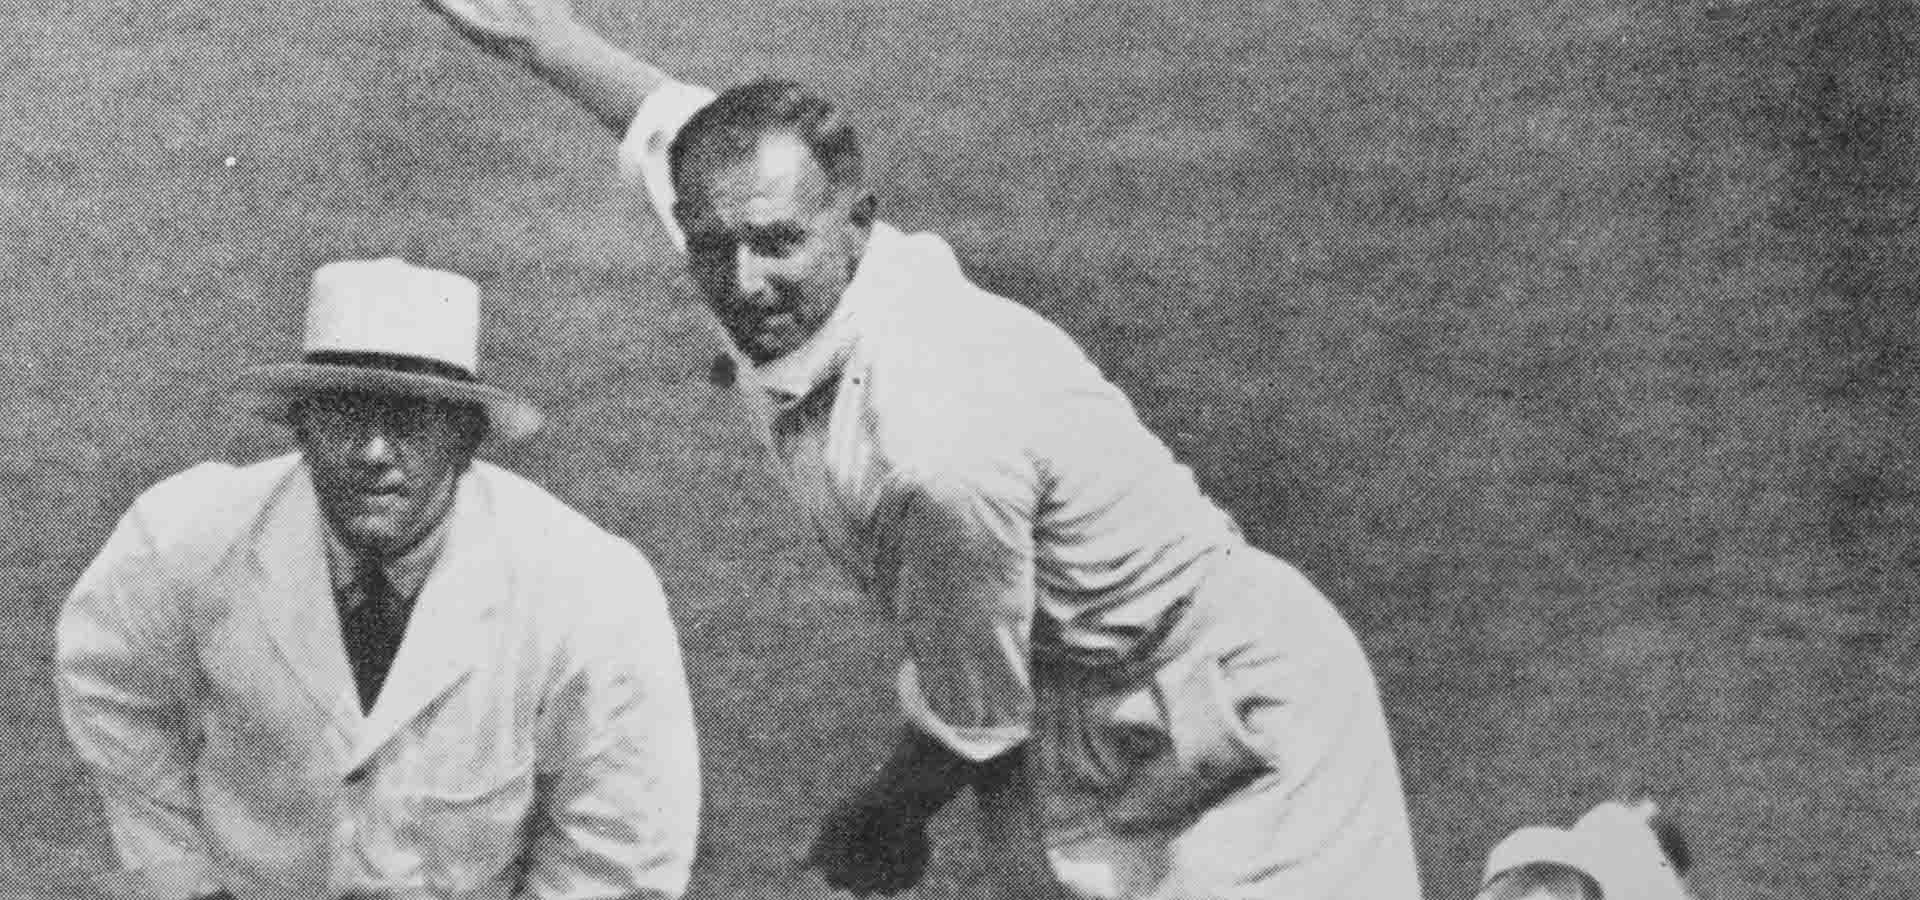 Hedley Verity bowling at Lord's